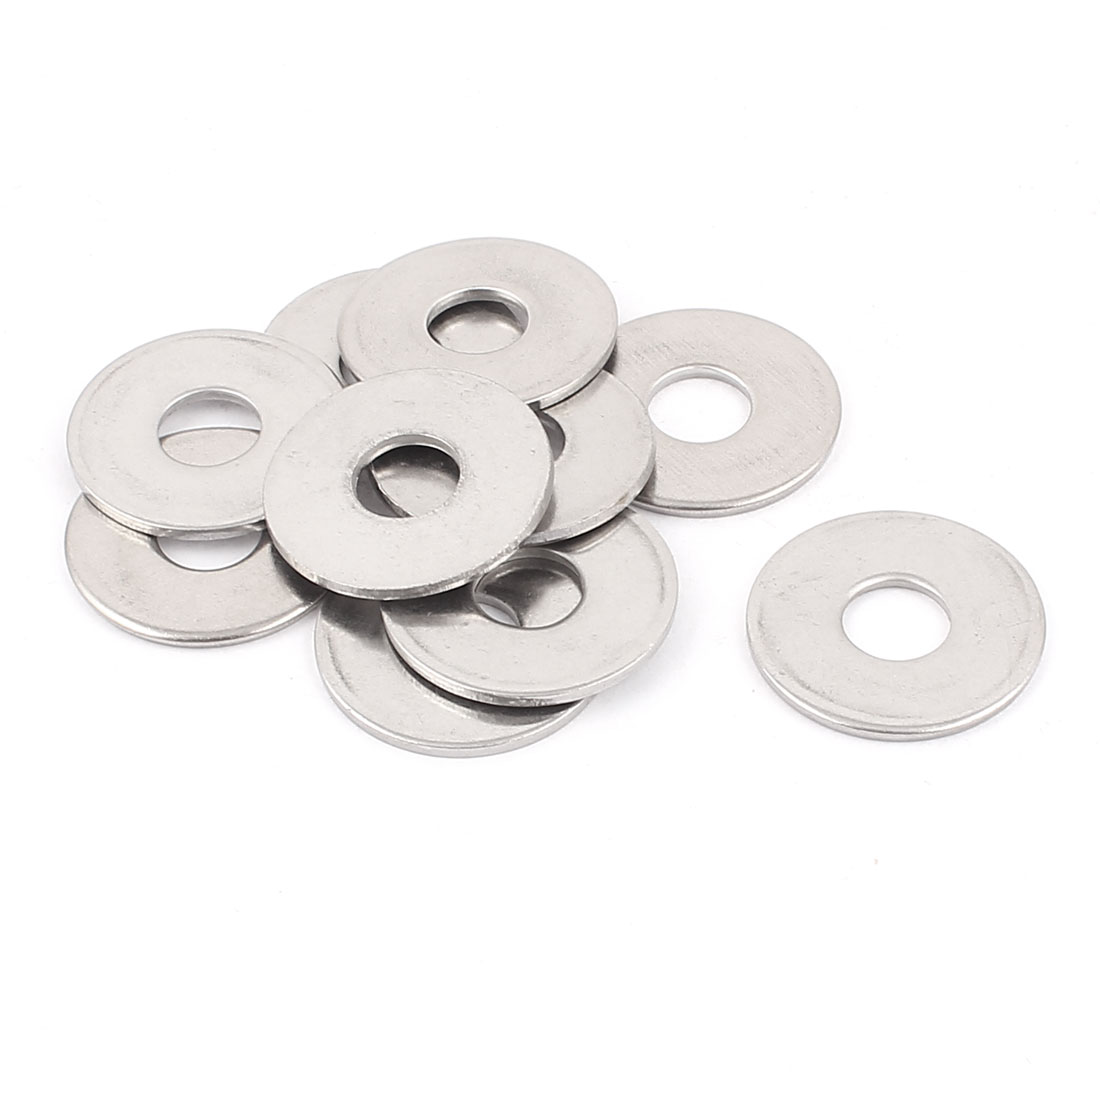 Crown Bolt 10mm Hole 304 Stainless Steel Flat Washers Gaskets 10pcs